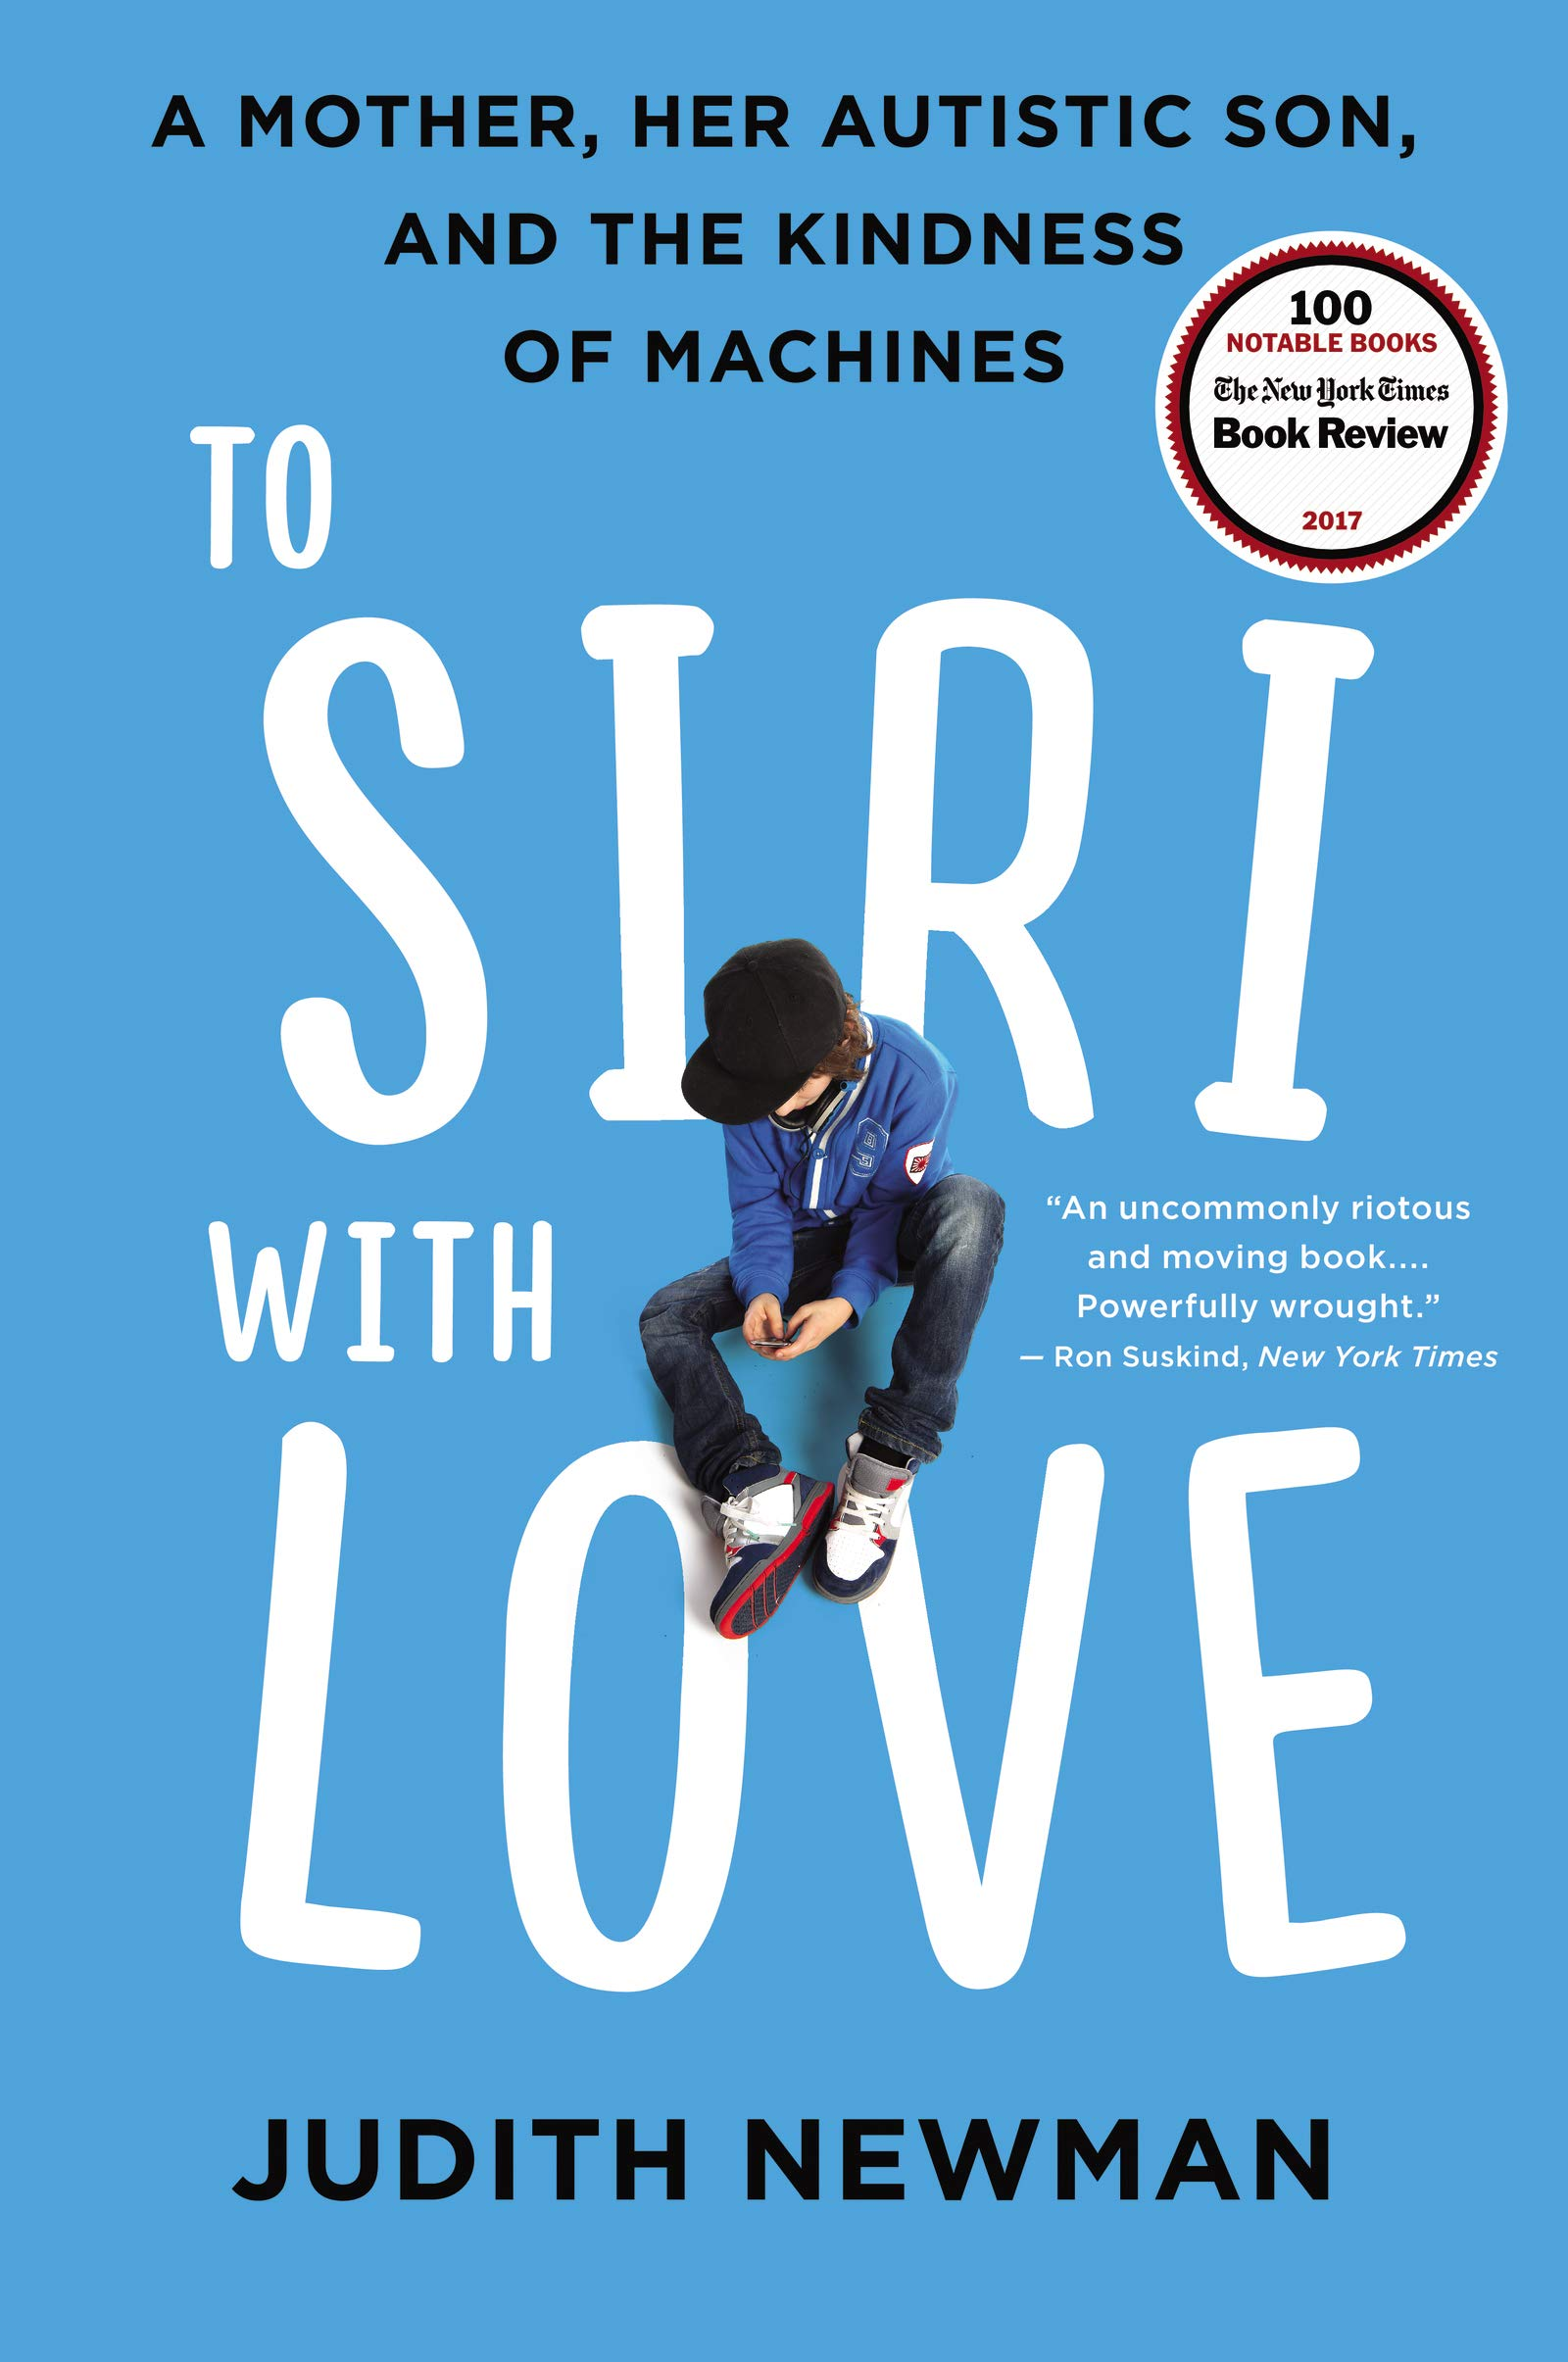 To Siri with Love: A Mother, Her Autistic Son, and the ...